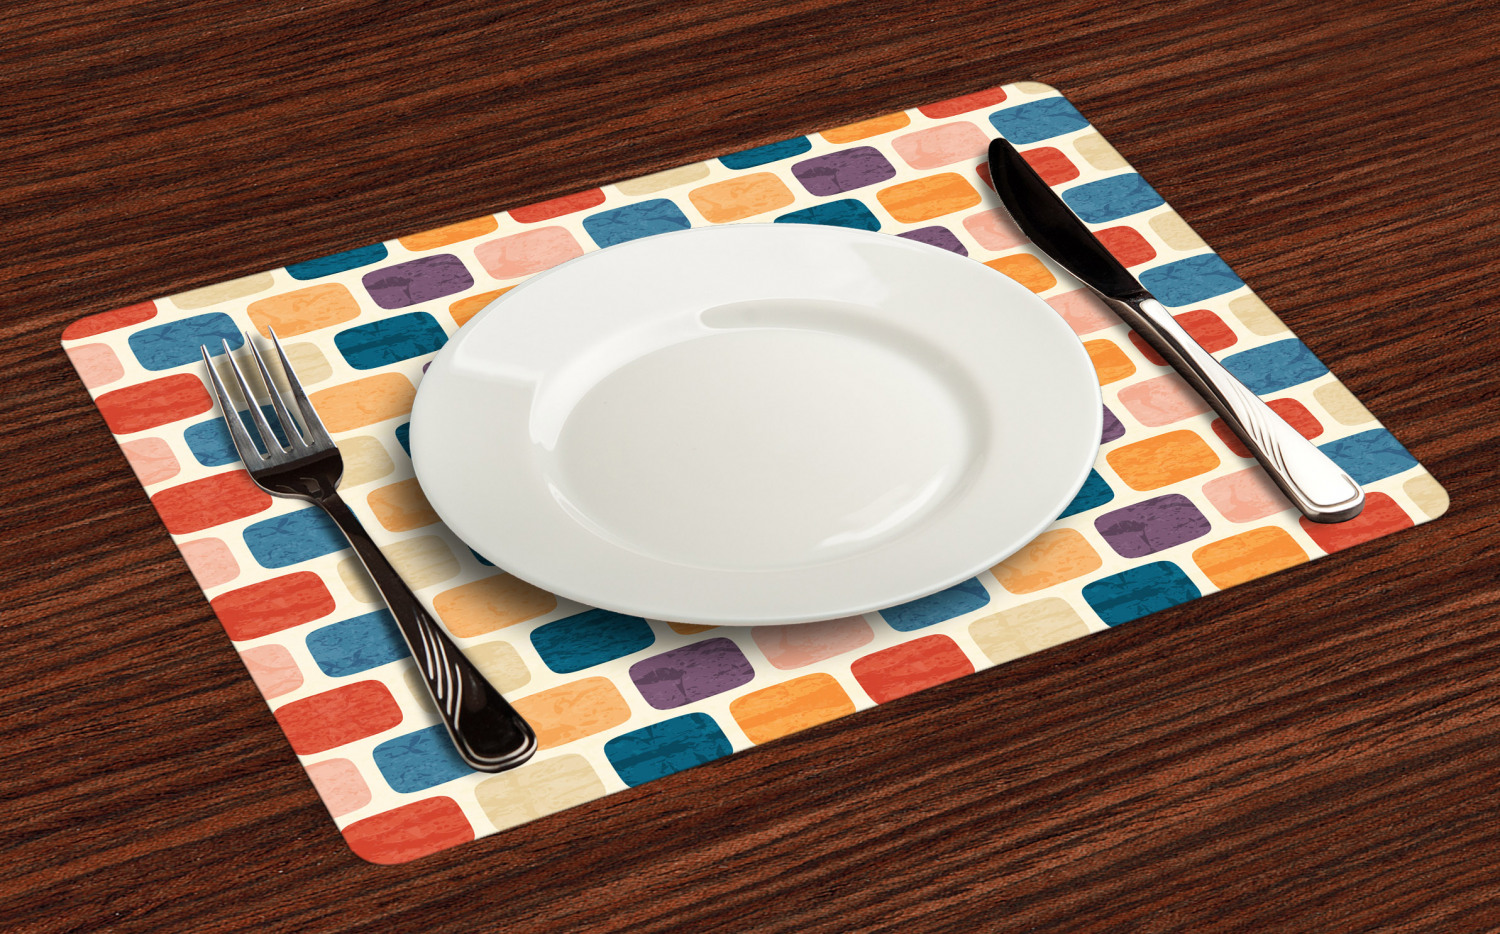 Ambesonne-Fabric-Place-Mats-Set-of-4-Placemats-for-Dining-Room-and-Kitchen-Table thumbnail 25